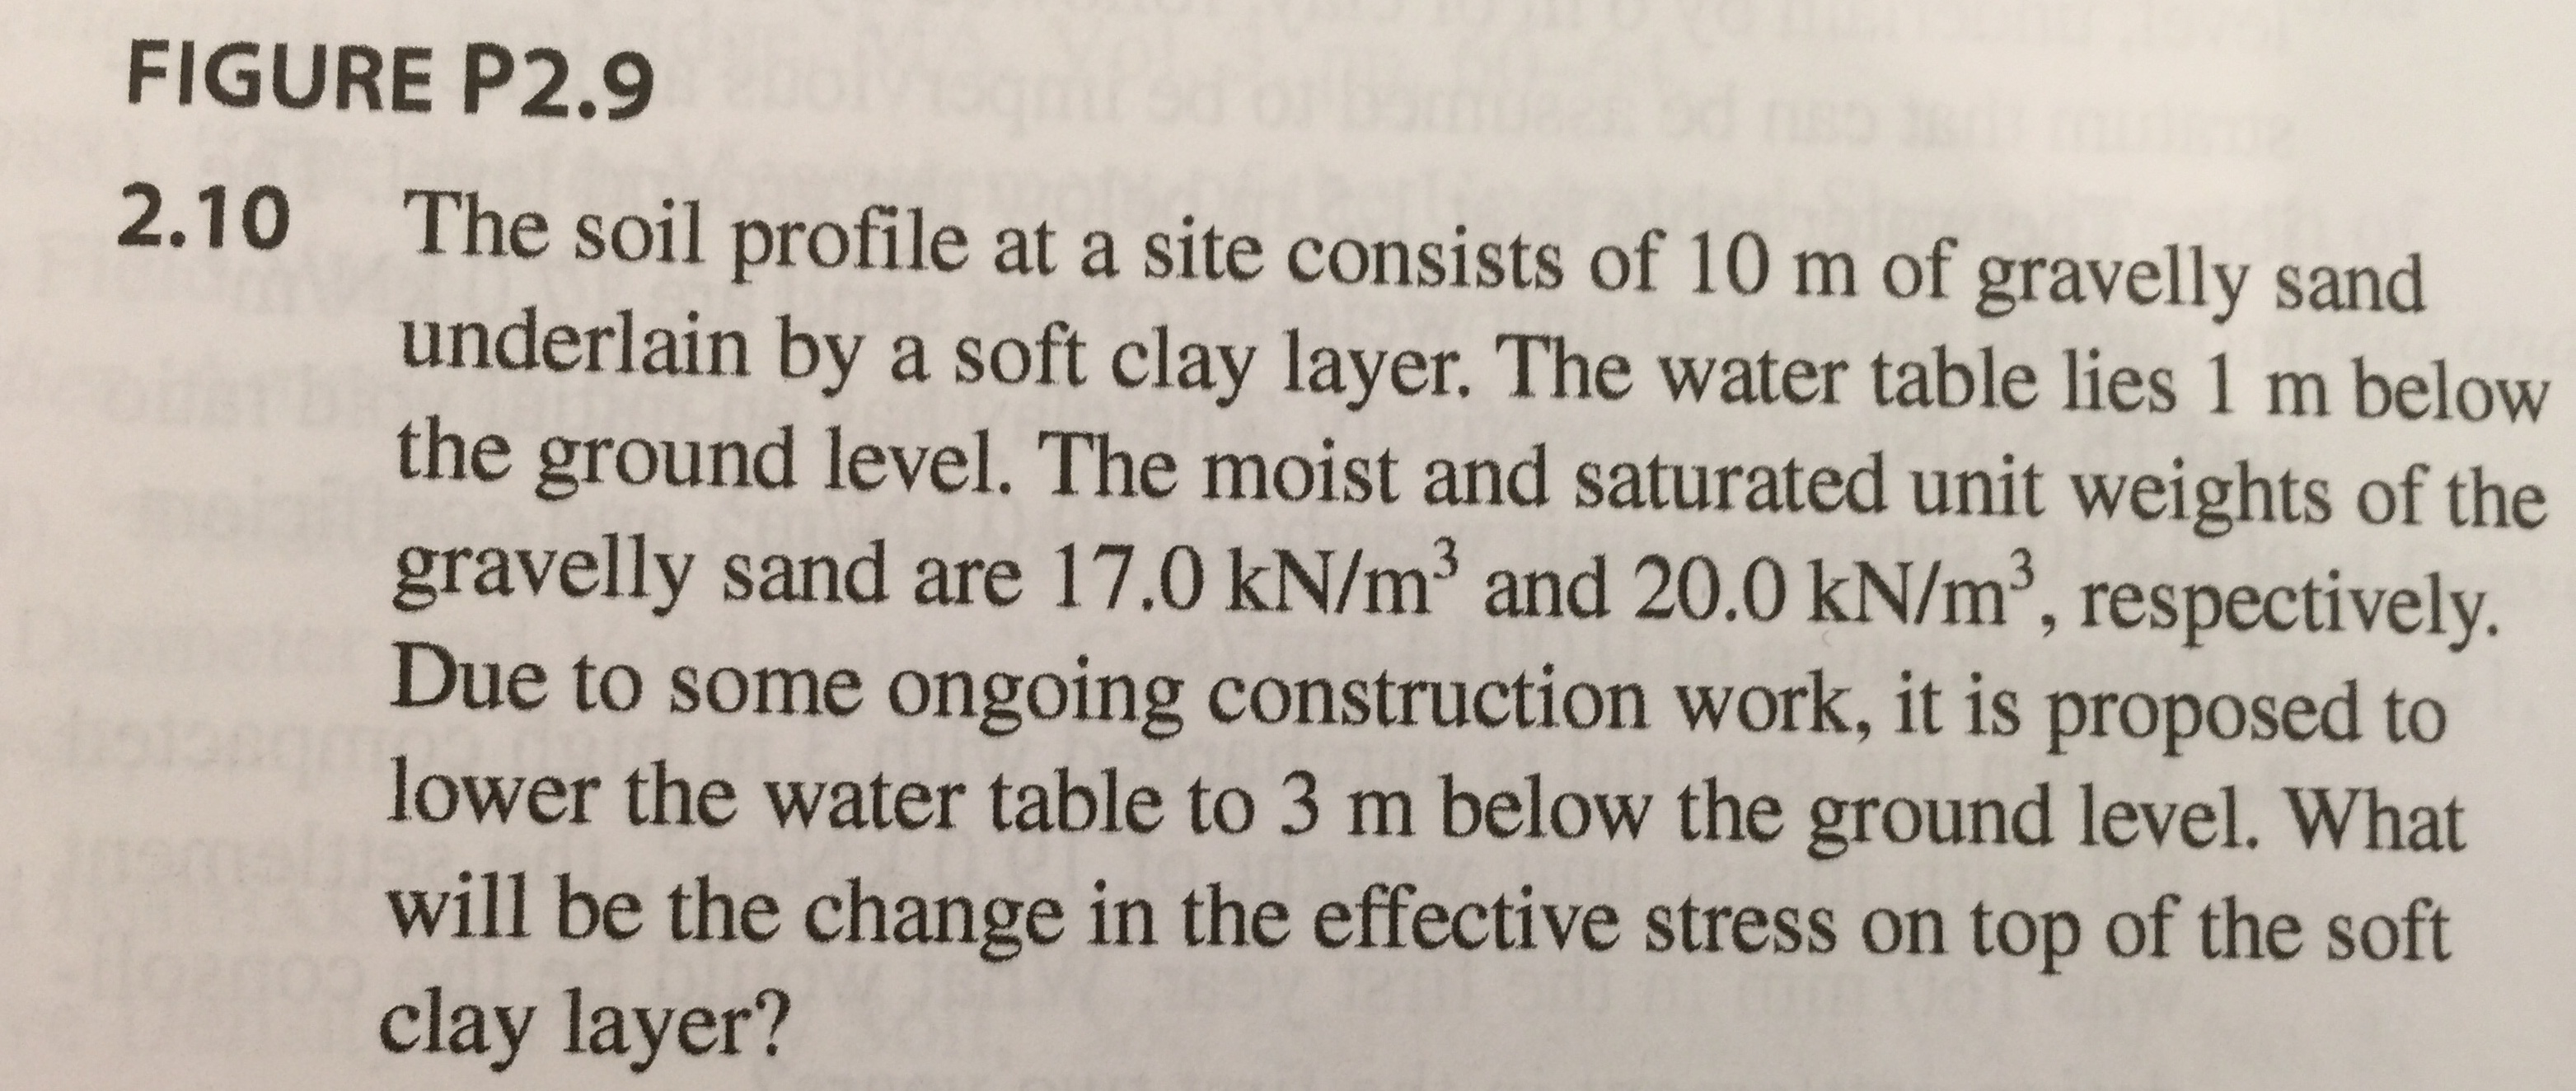 FIGURE P2.9 The soil profile at a site consists of 10 m of gravelly sand underlain by a soft clay layer. The water table lies 1 m below the ground level. The moist and saturated unit weights of the gravelly sand are 17.0 kN/m3 and 20.0 kN/m3, respectively. Due to some ongoing construction work, it is proposed to lower the water table to 3 m below the ground level. What will be the change in the effective stress on top of the soft clay layer? 2.10